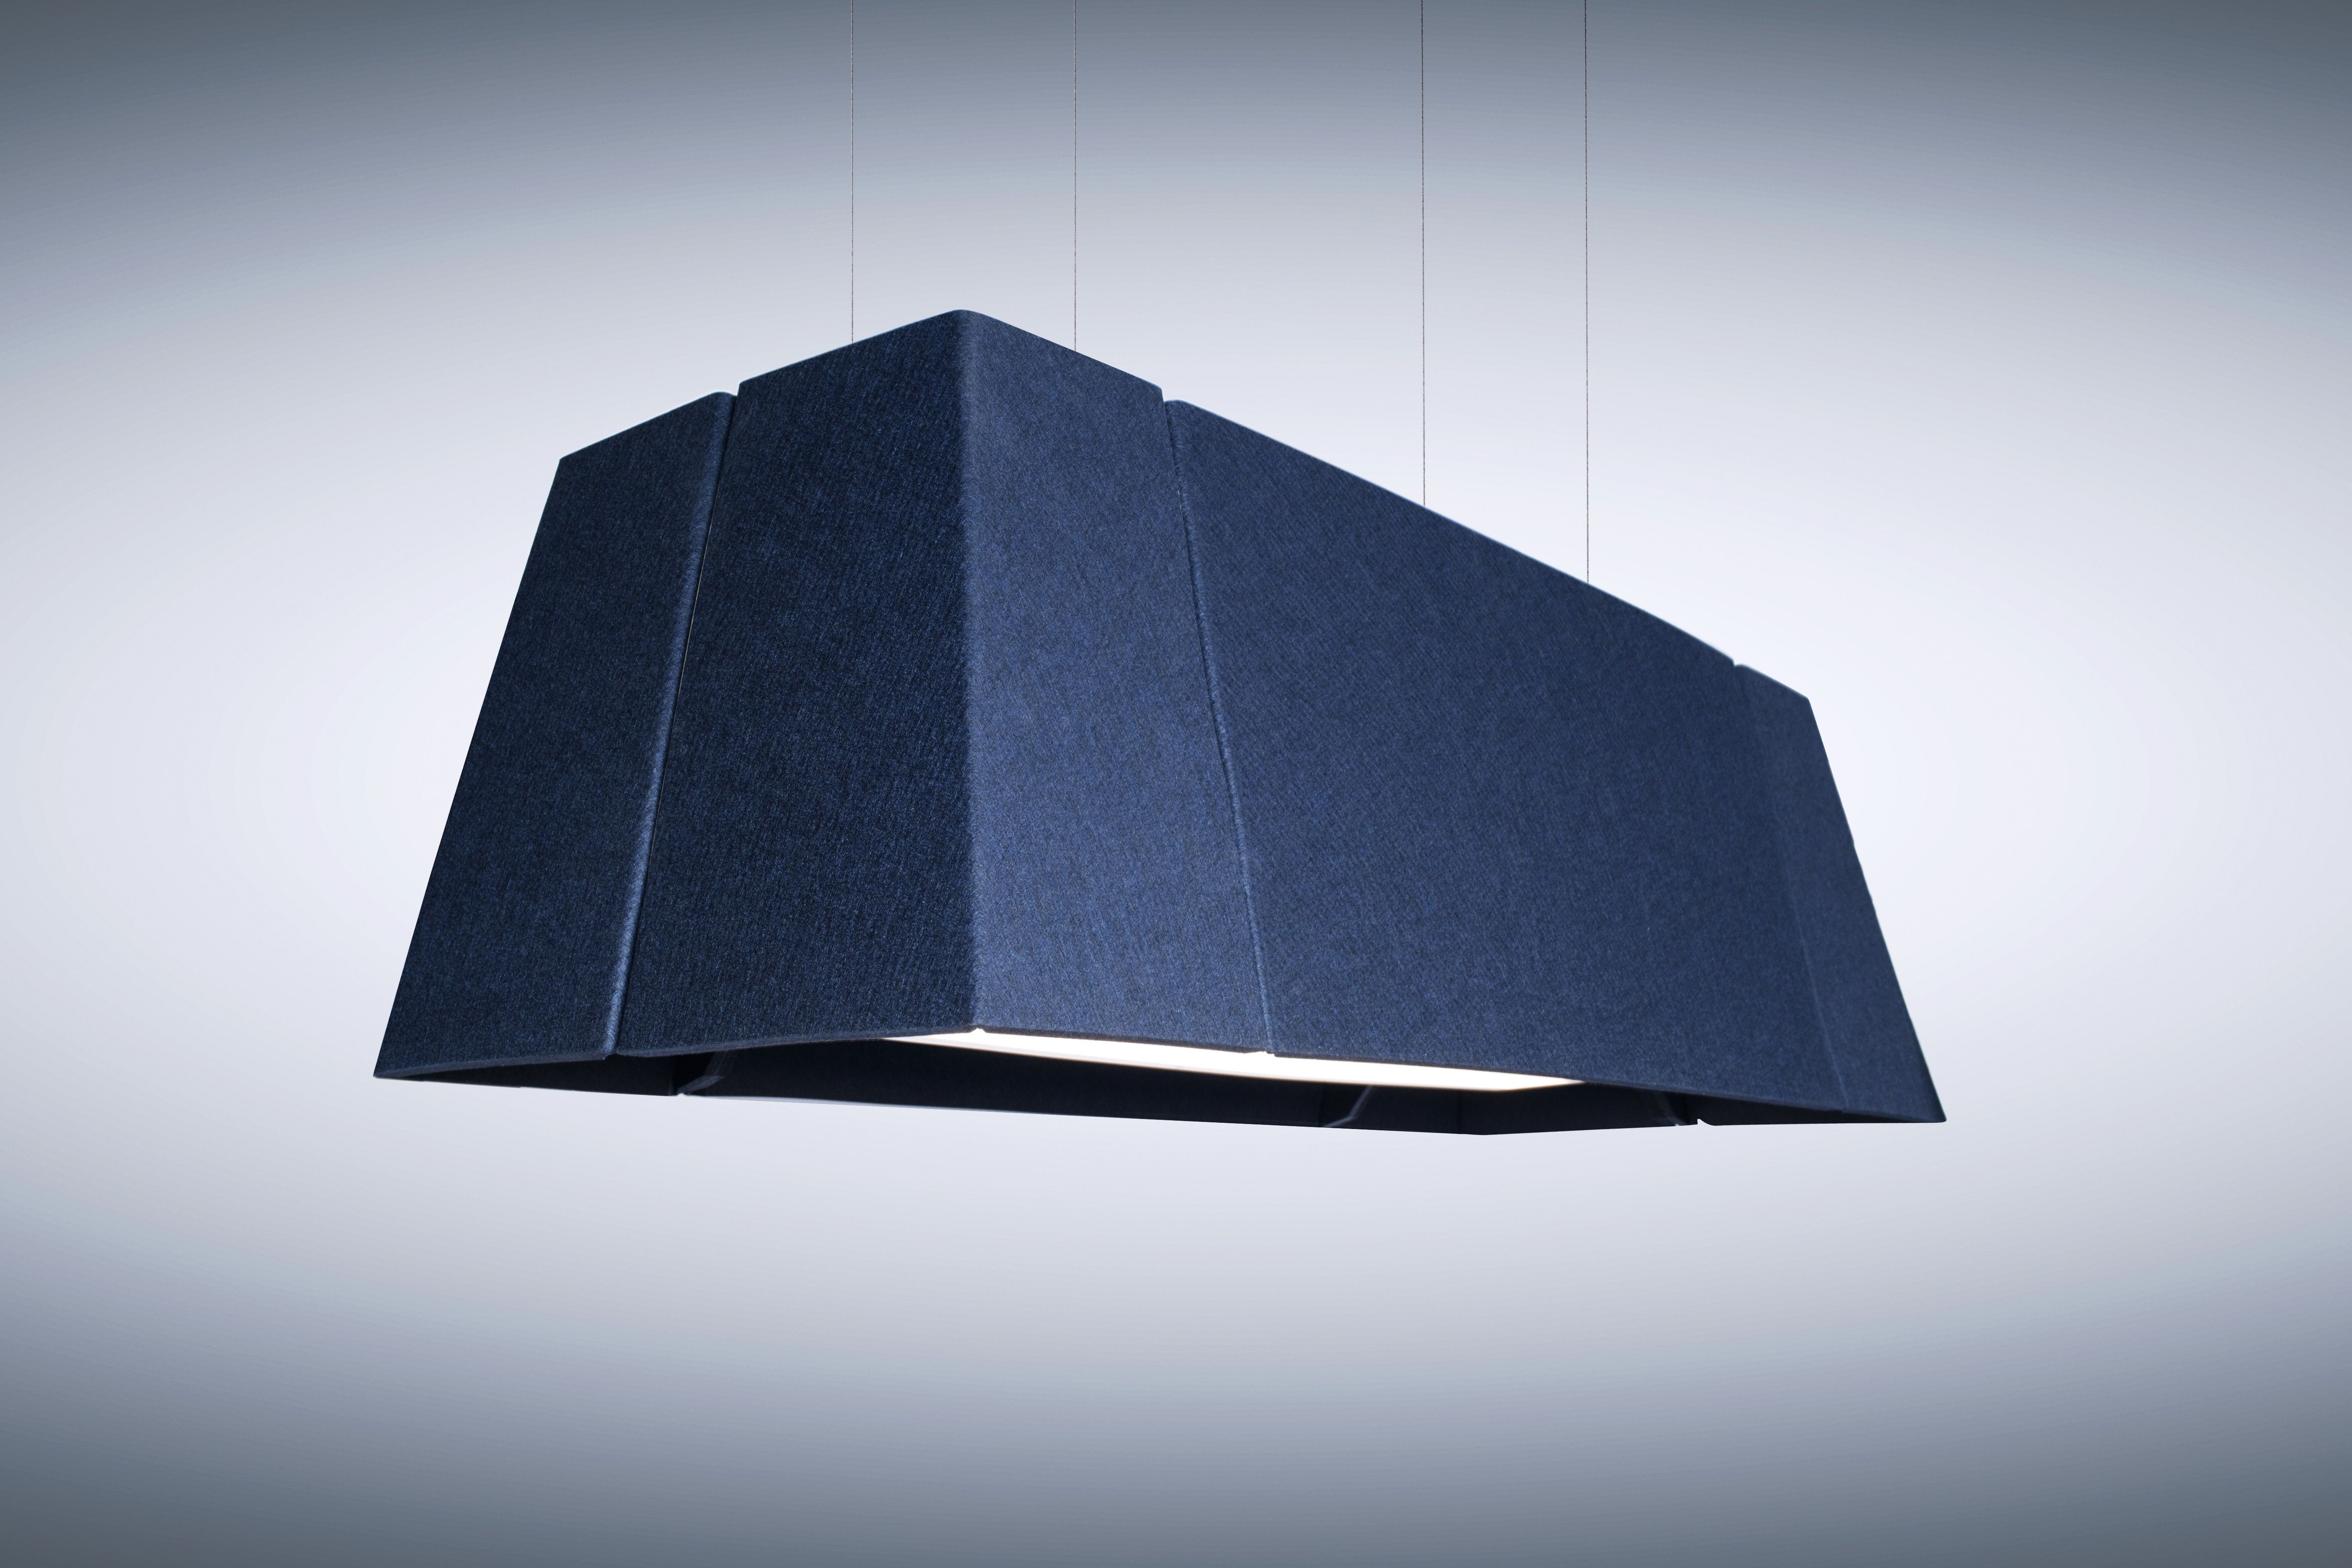 Acoustic Light Fixtures : Thinklab by luxxbox vapor rectilinear acoustic lighting